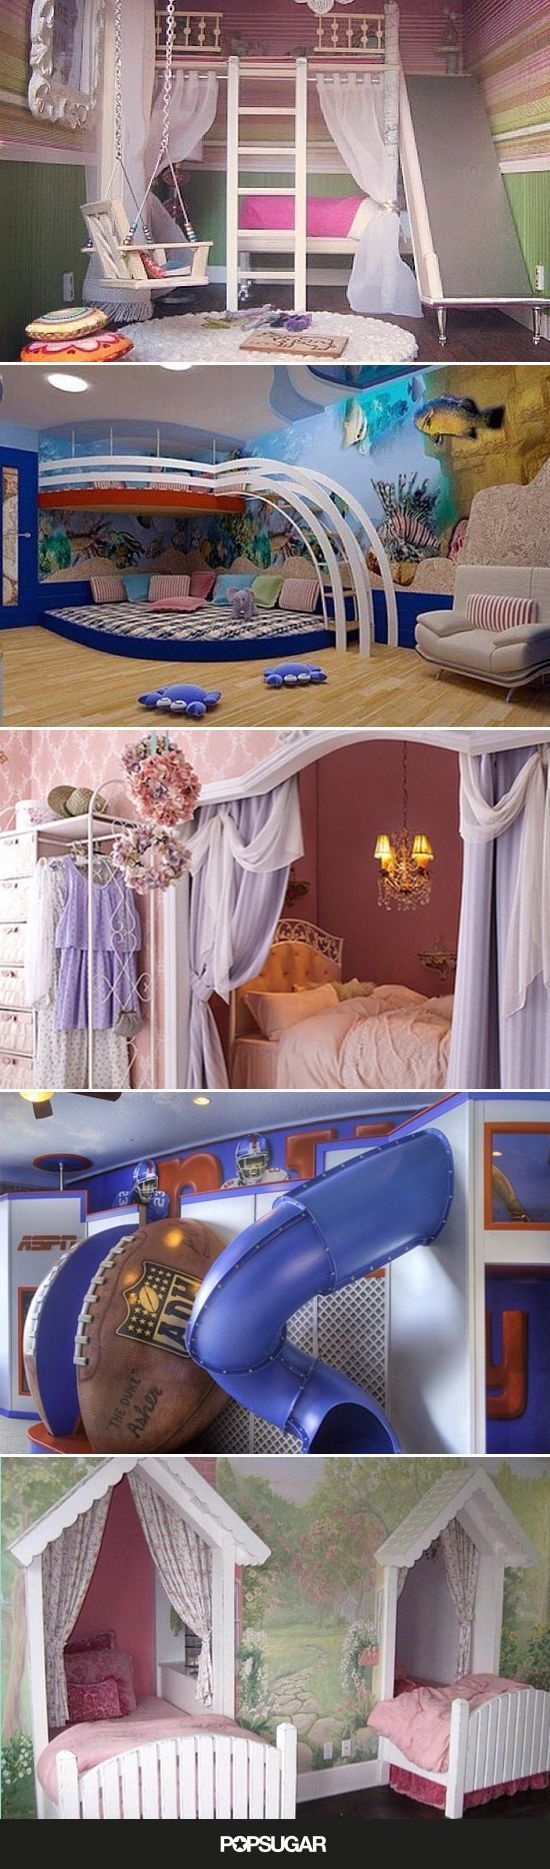 Magnetic floating beds these  crazycool bedrooms will give you inspiration for days if